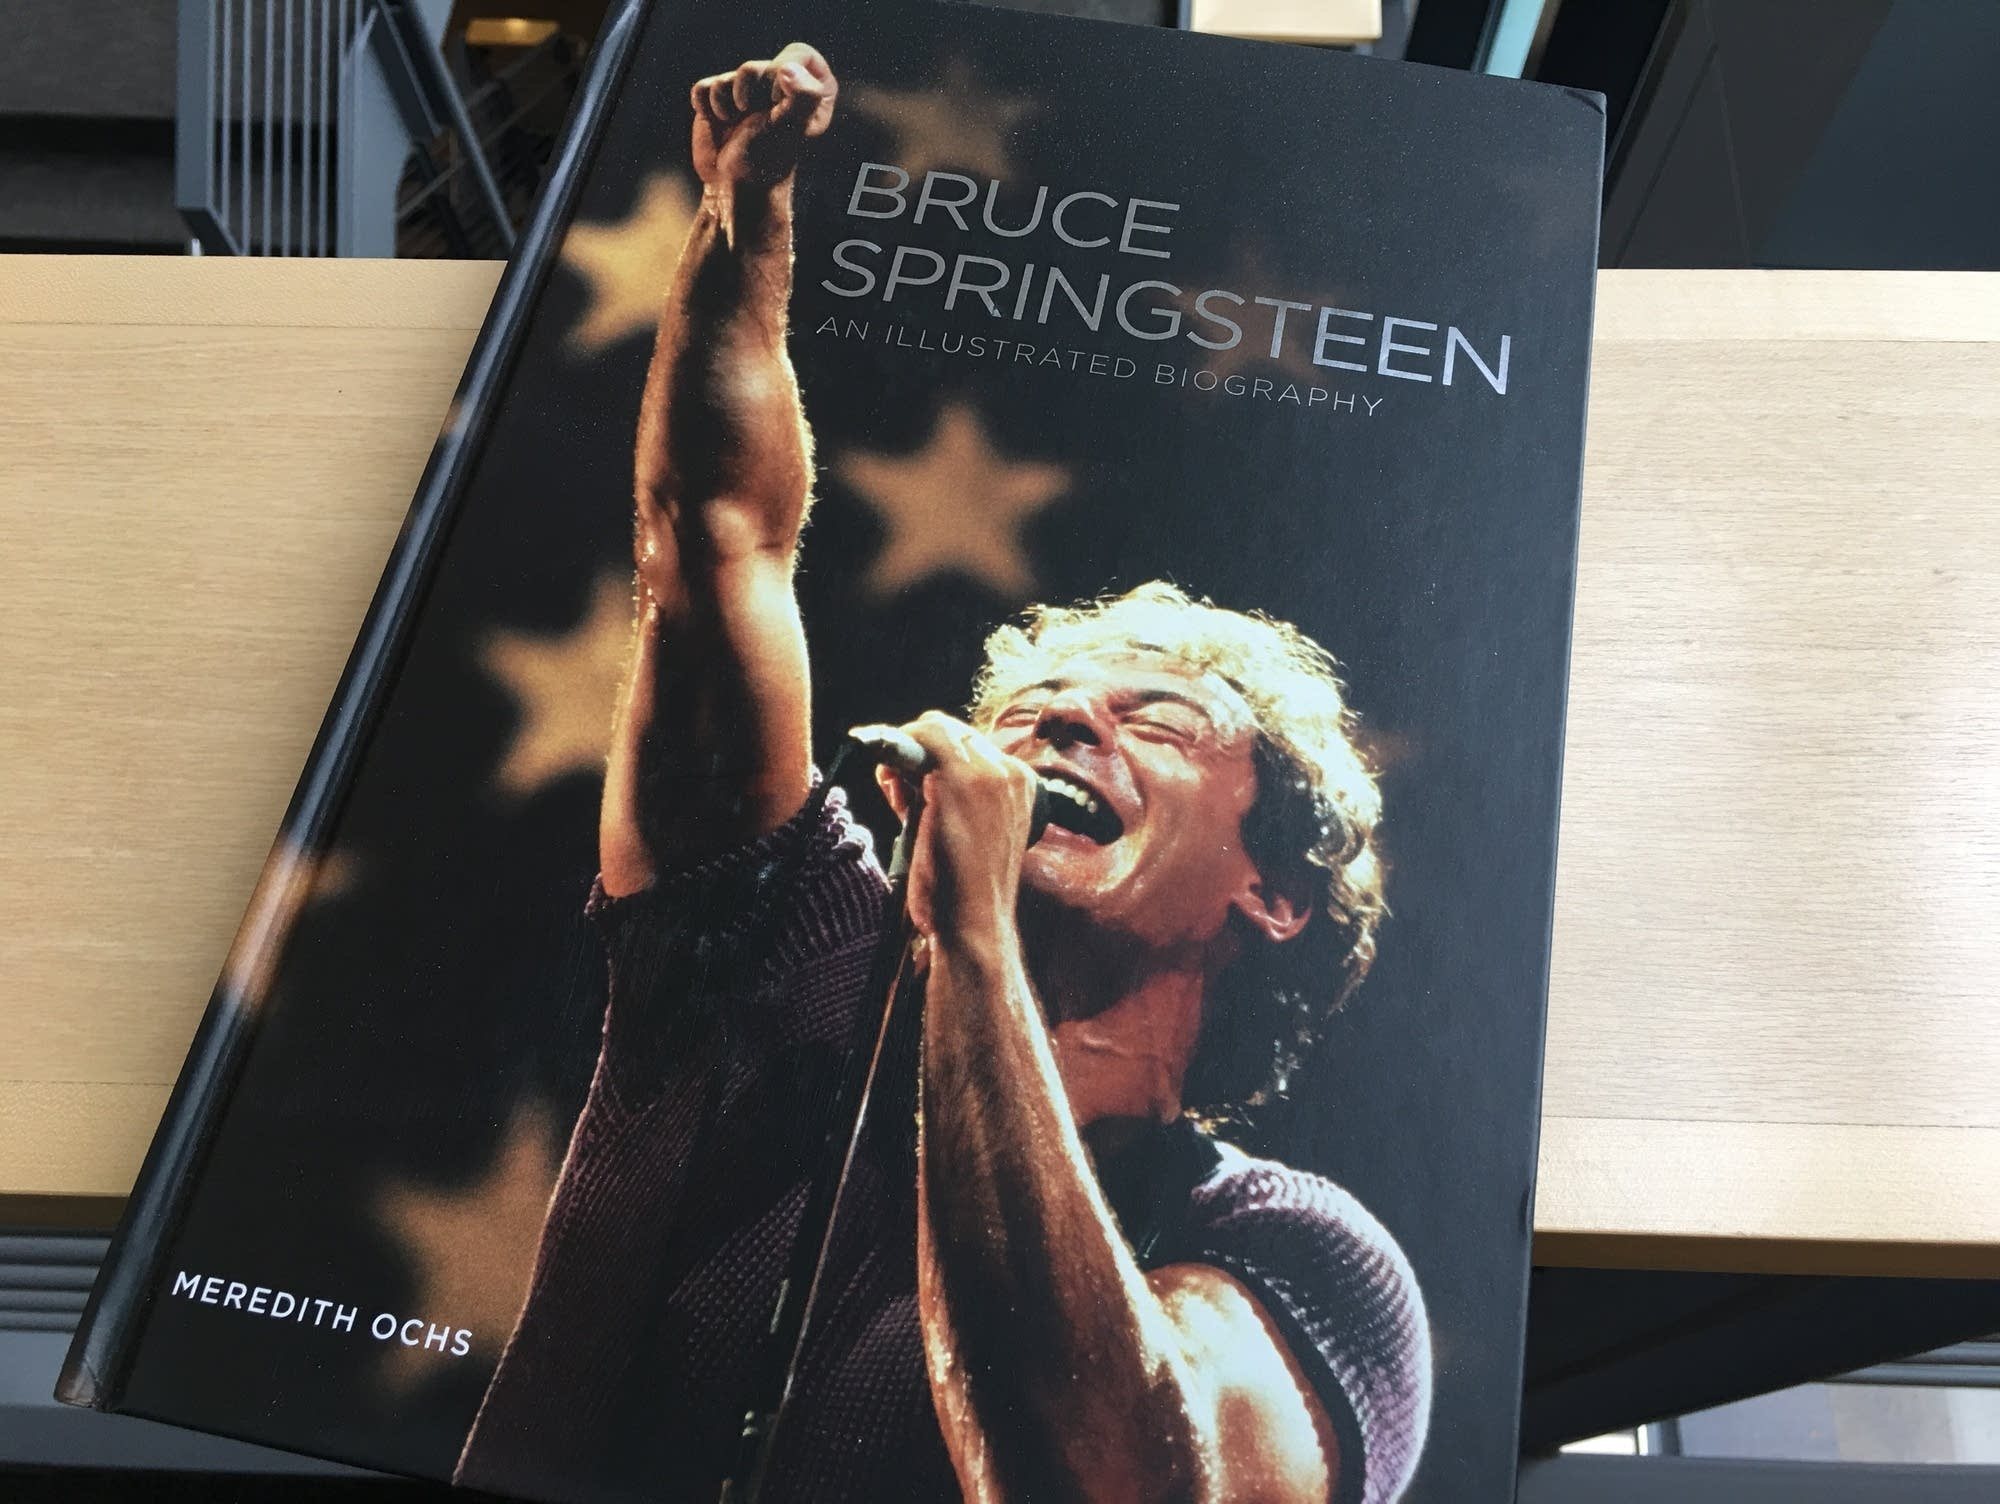 Meredith Ochs's 'Bruce Springsteen: An Illustrated Biography.'